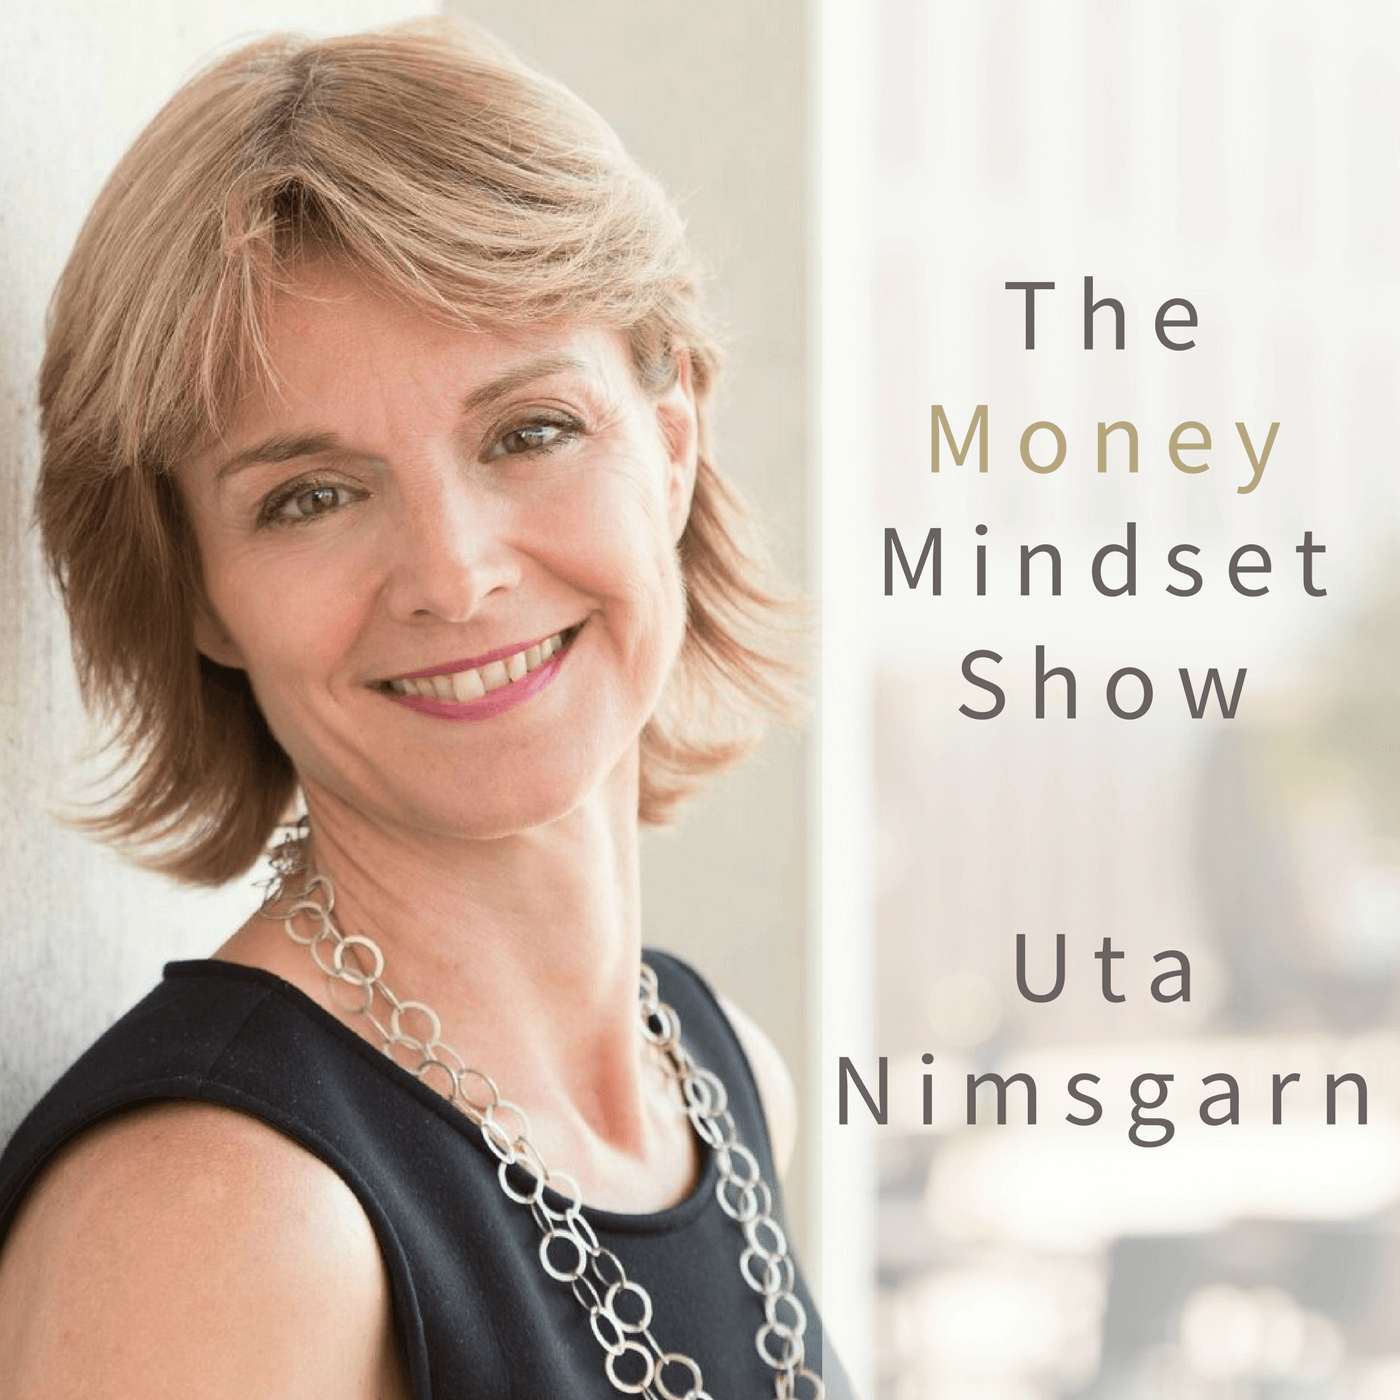 Uta-Nimsgarn. The Money-Mindset Show